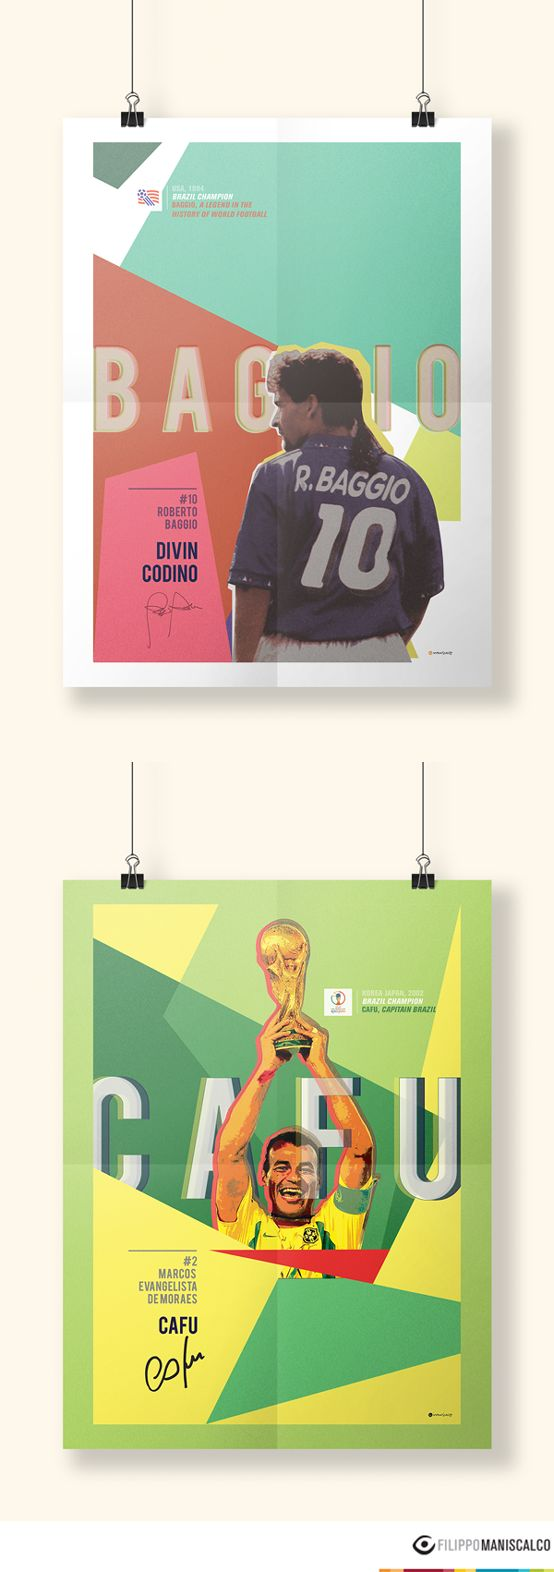 Collection of eleven illustrations on the players of the World Cup in 40 years. Inside each poster there is a feeling that there always exist. #HistoryofWorldCup #Baggio #DivinCodino #Cafu #USA94 #KoreaJapan2002